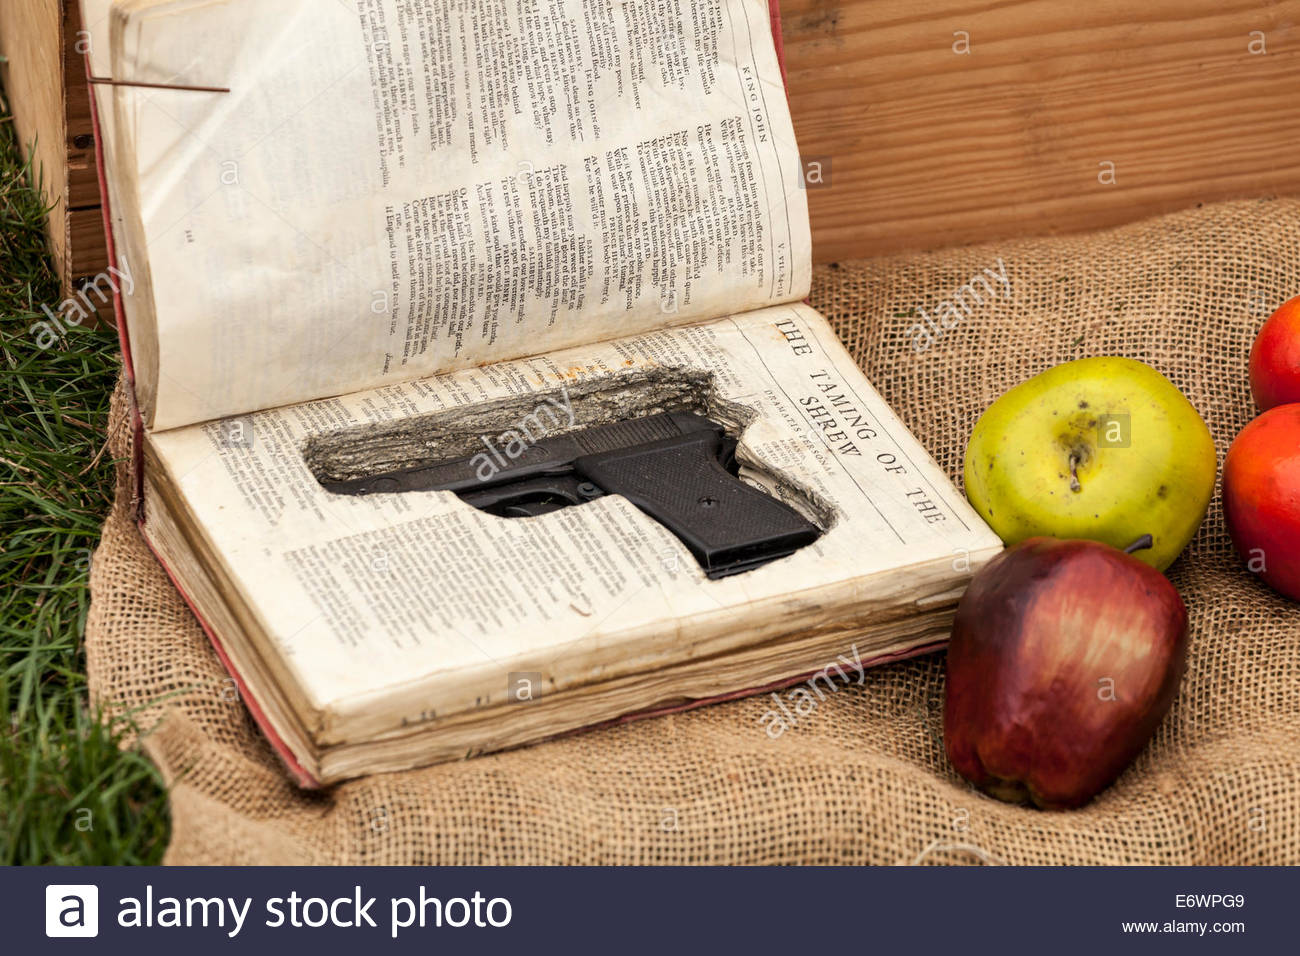 Concealed gun.  Display of spies and espionage at a 1940's event. - Stock Image